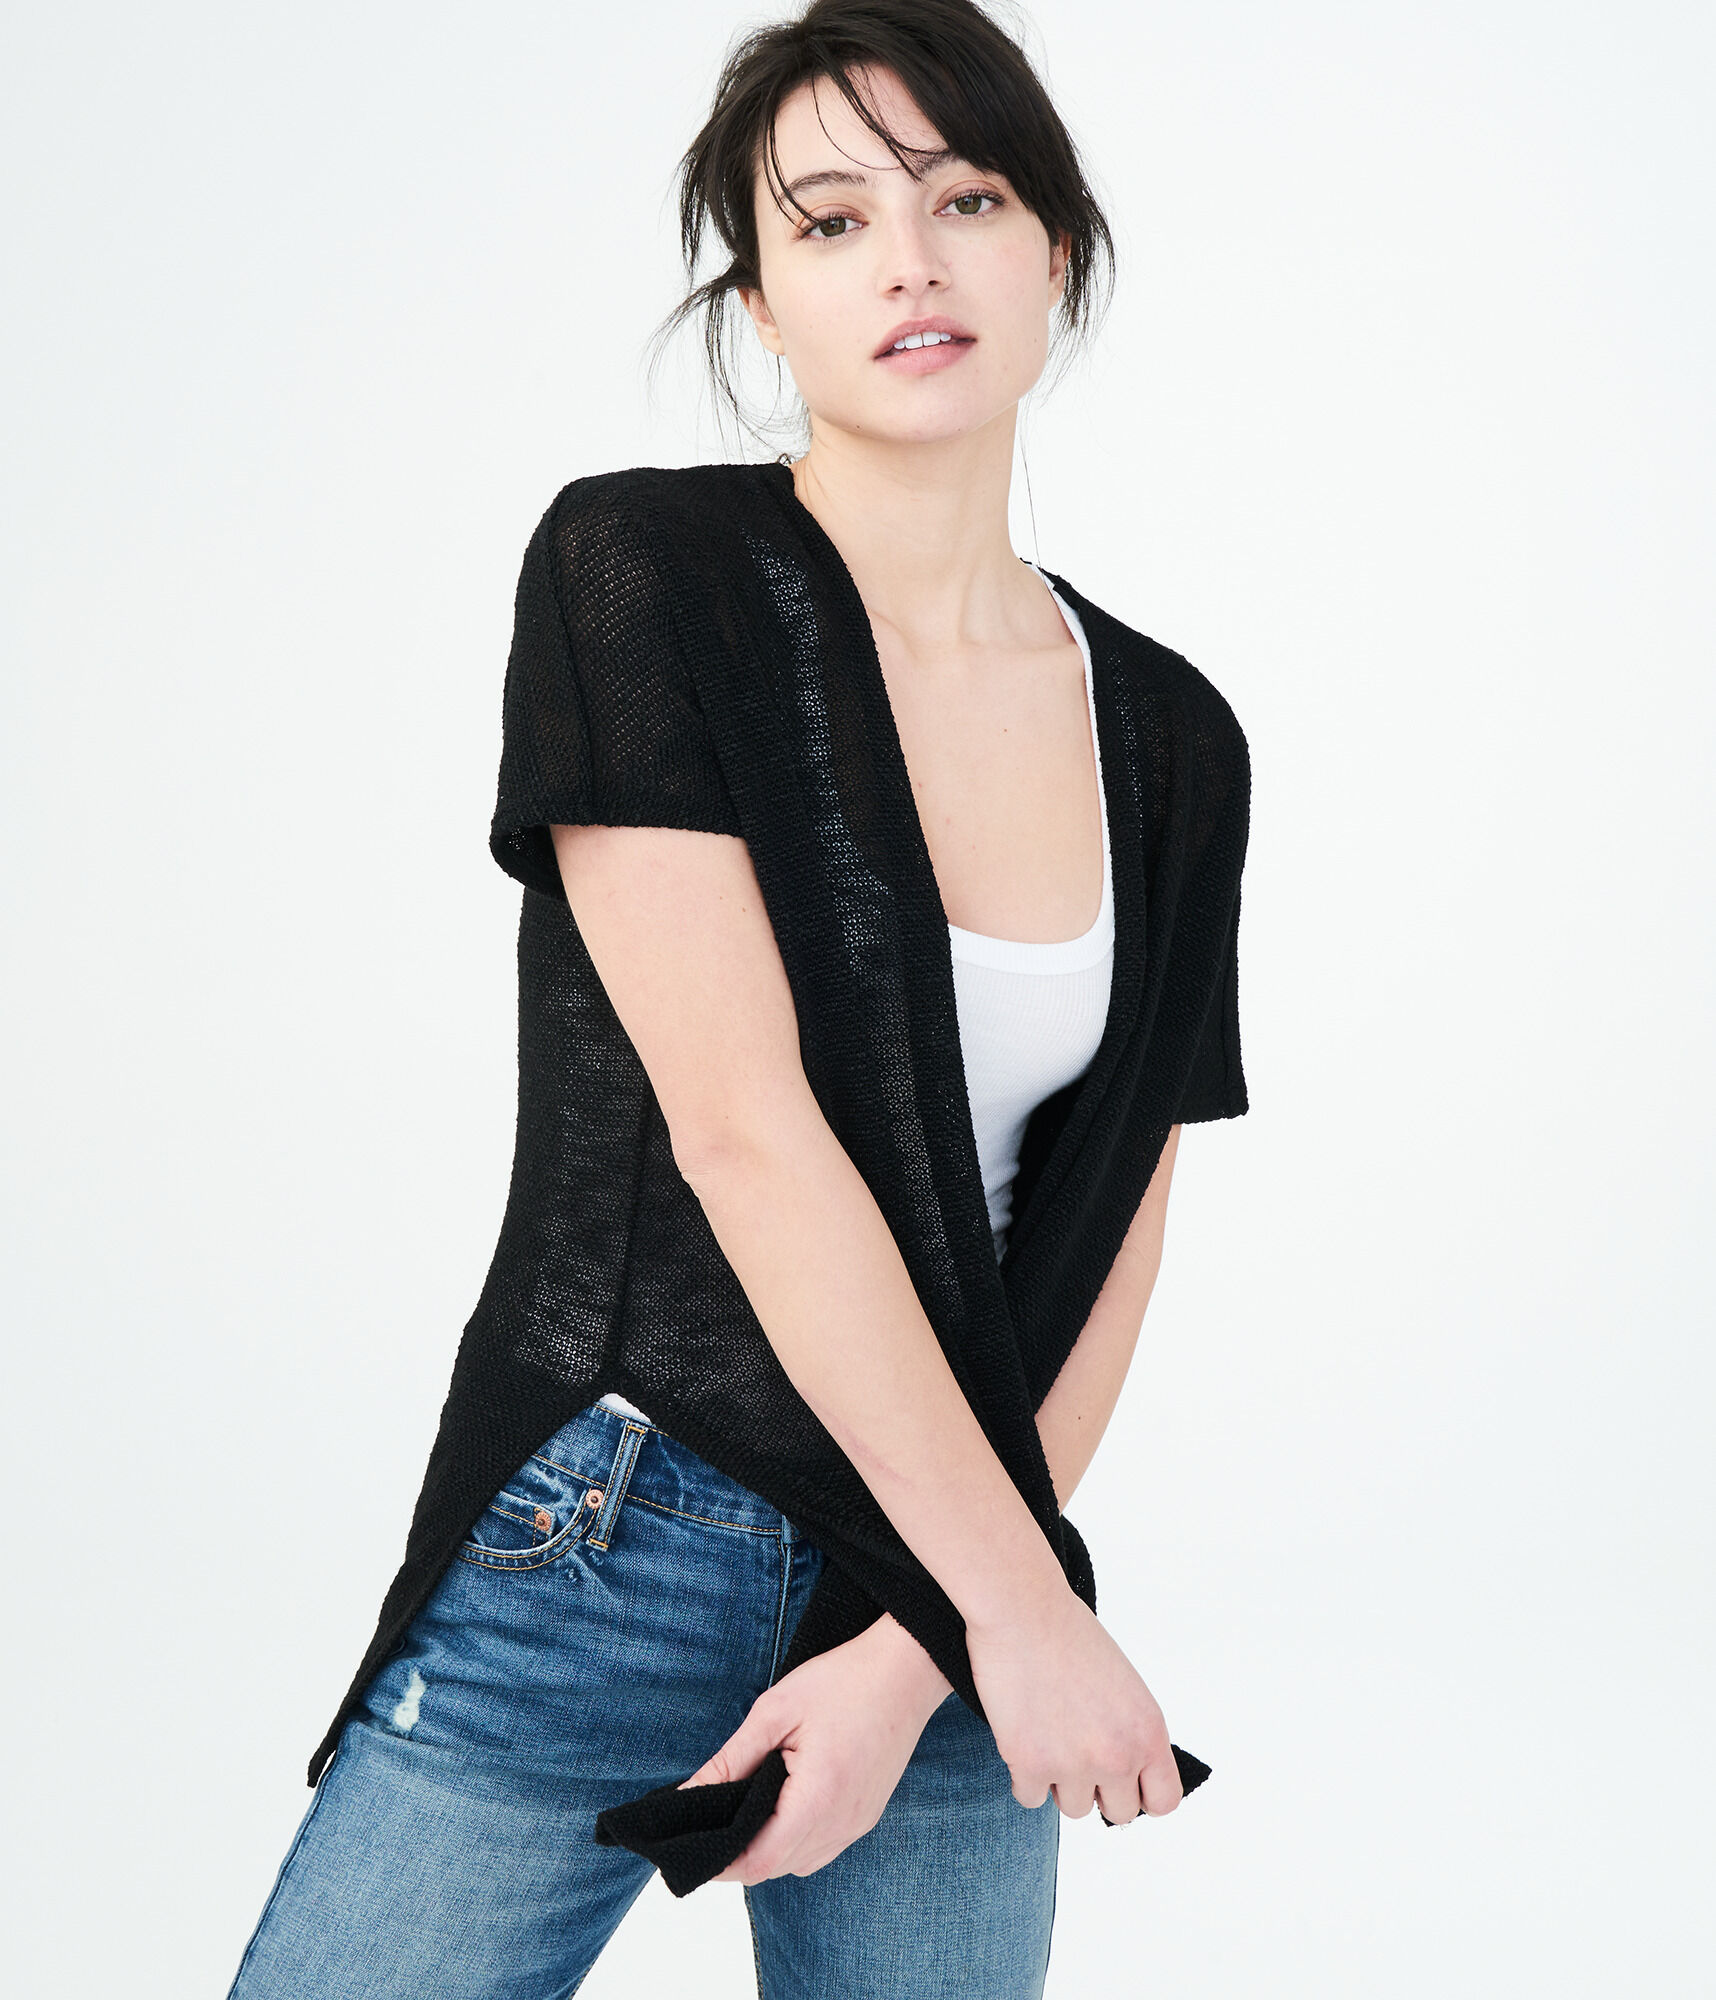 Where to Buy Cardigan Sweaters